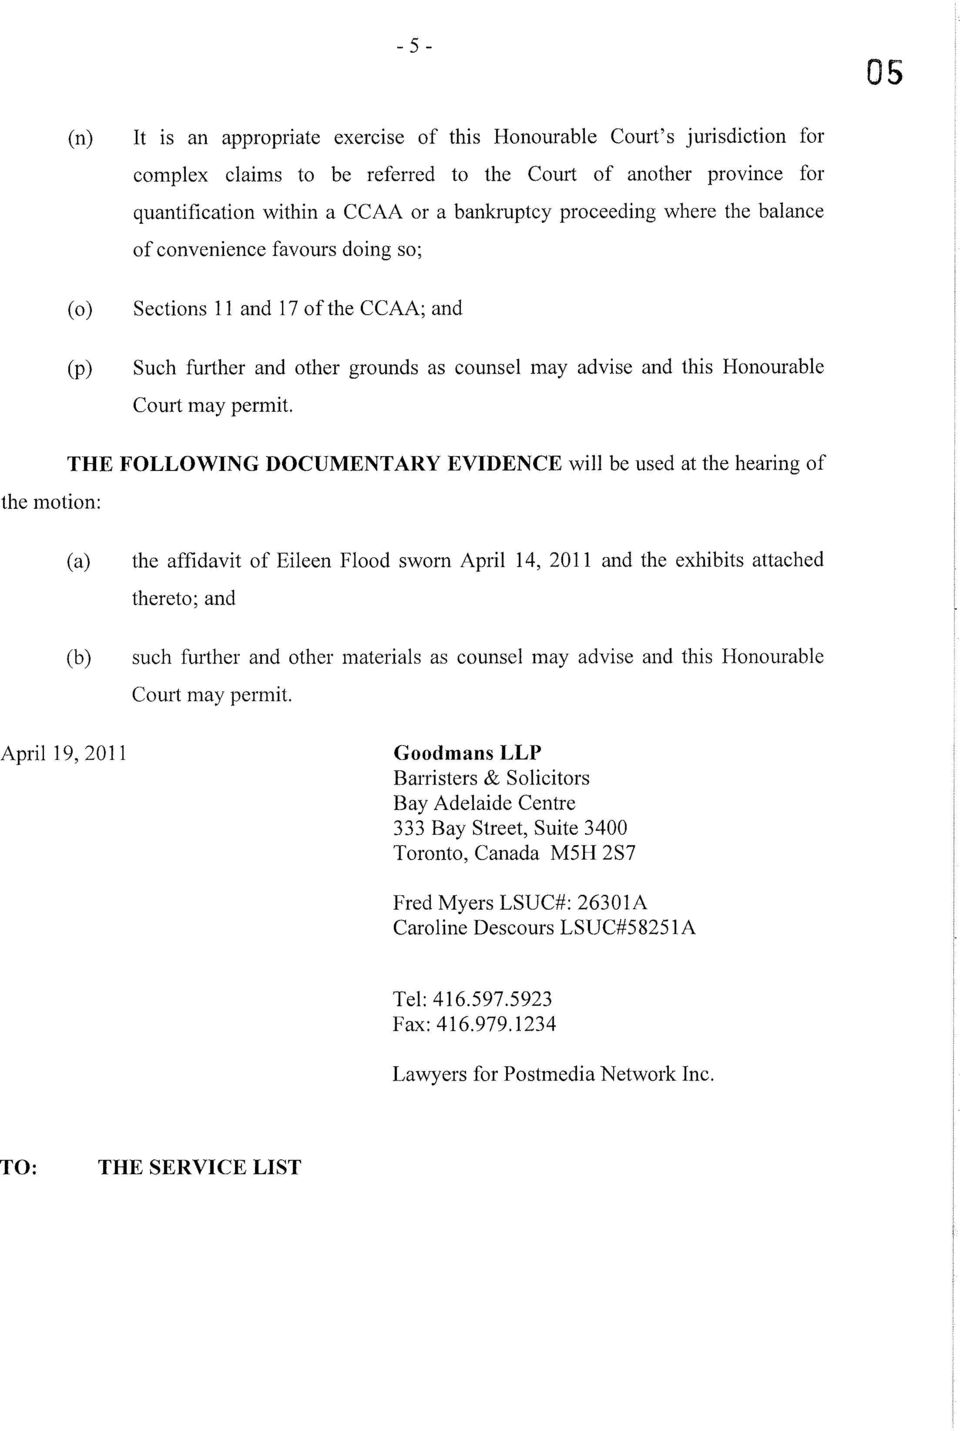 THE FOLLOWNG DOCVMENTARY EVDENCE will be used at the hearing of the motion: (a) the affidavit of Eileen Flood sworn April 14, 2011 and the exhibits attached thereto; and (b) such further and other